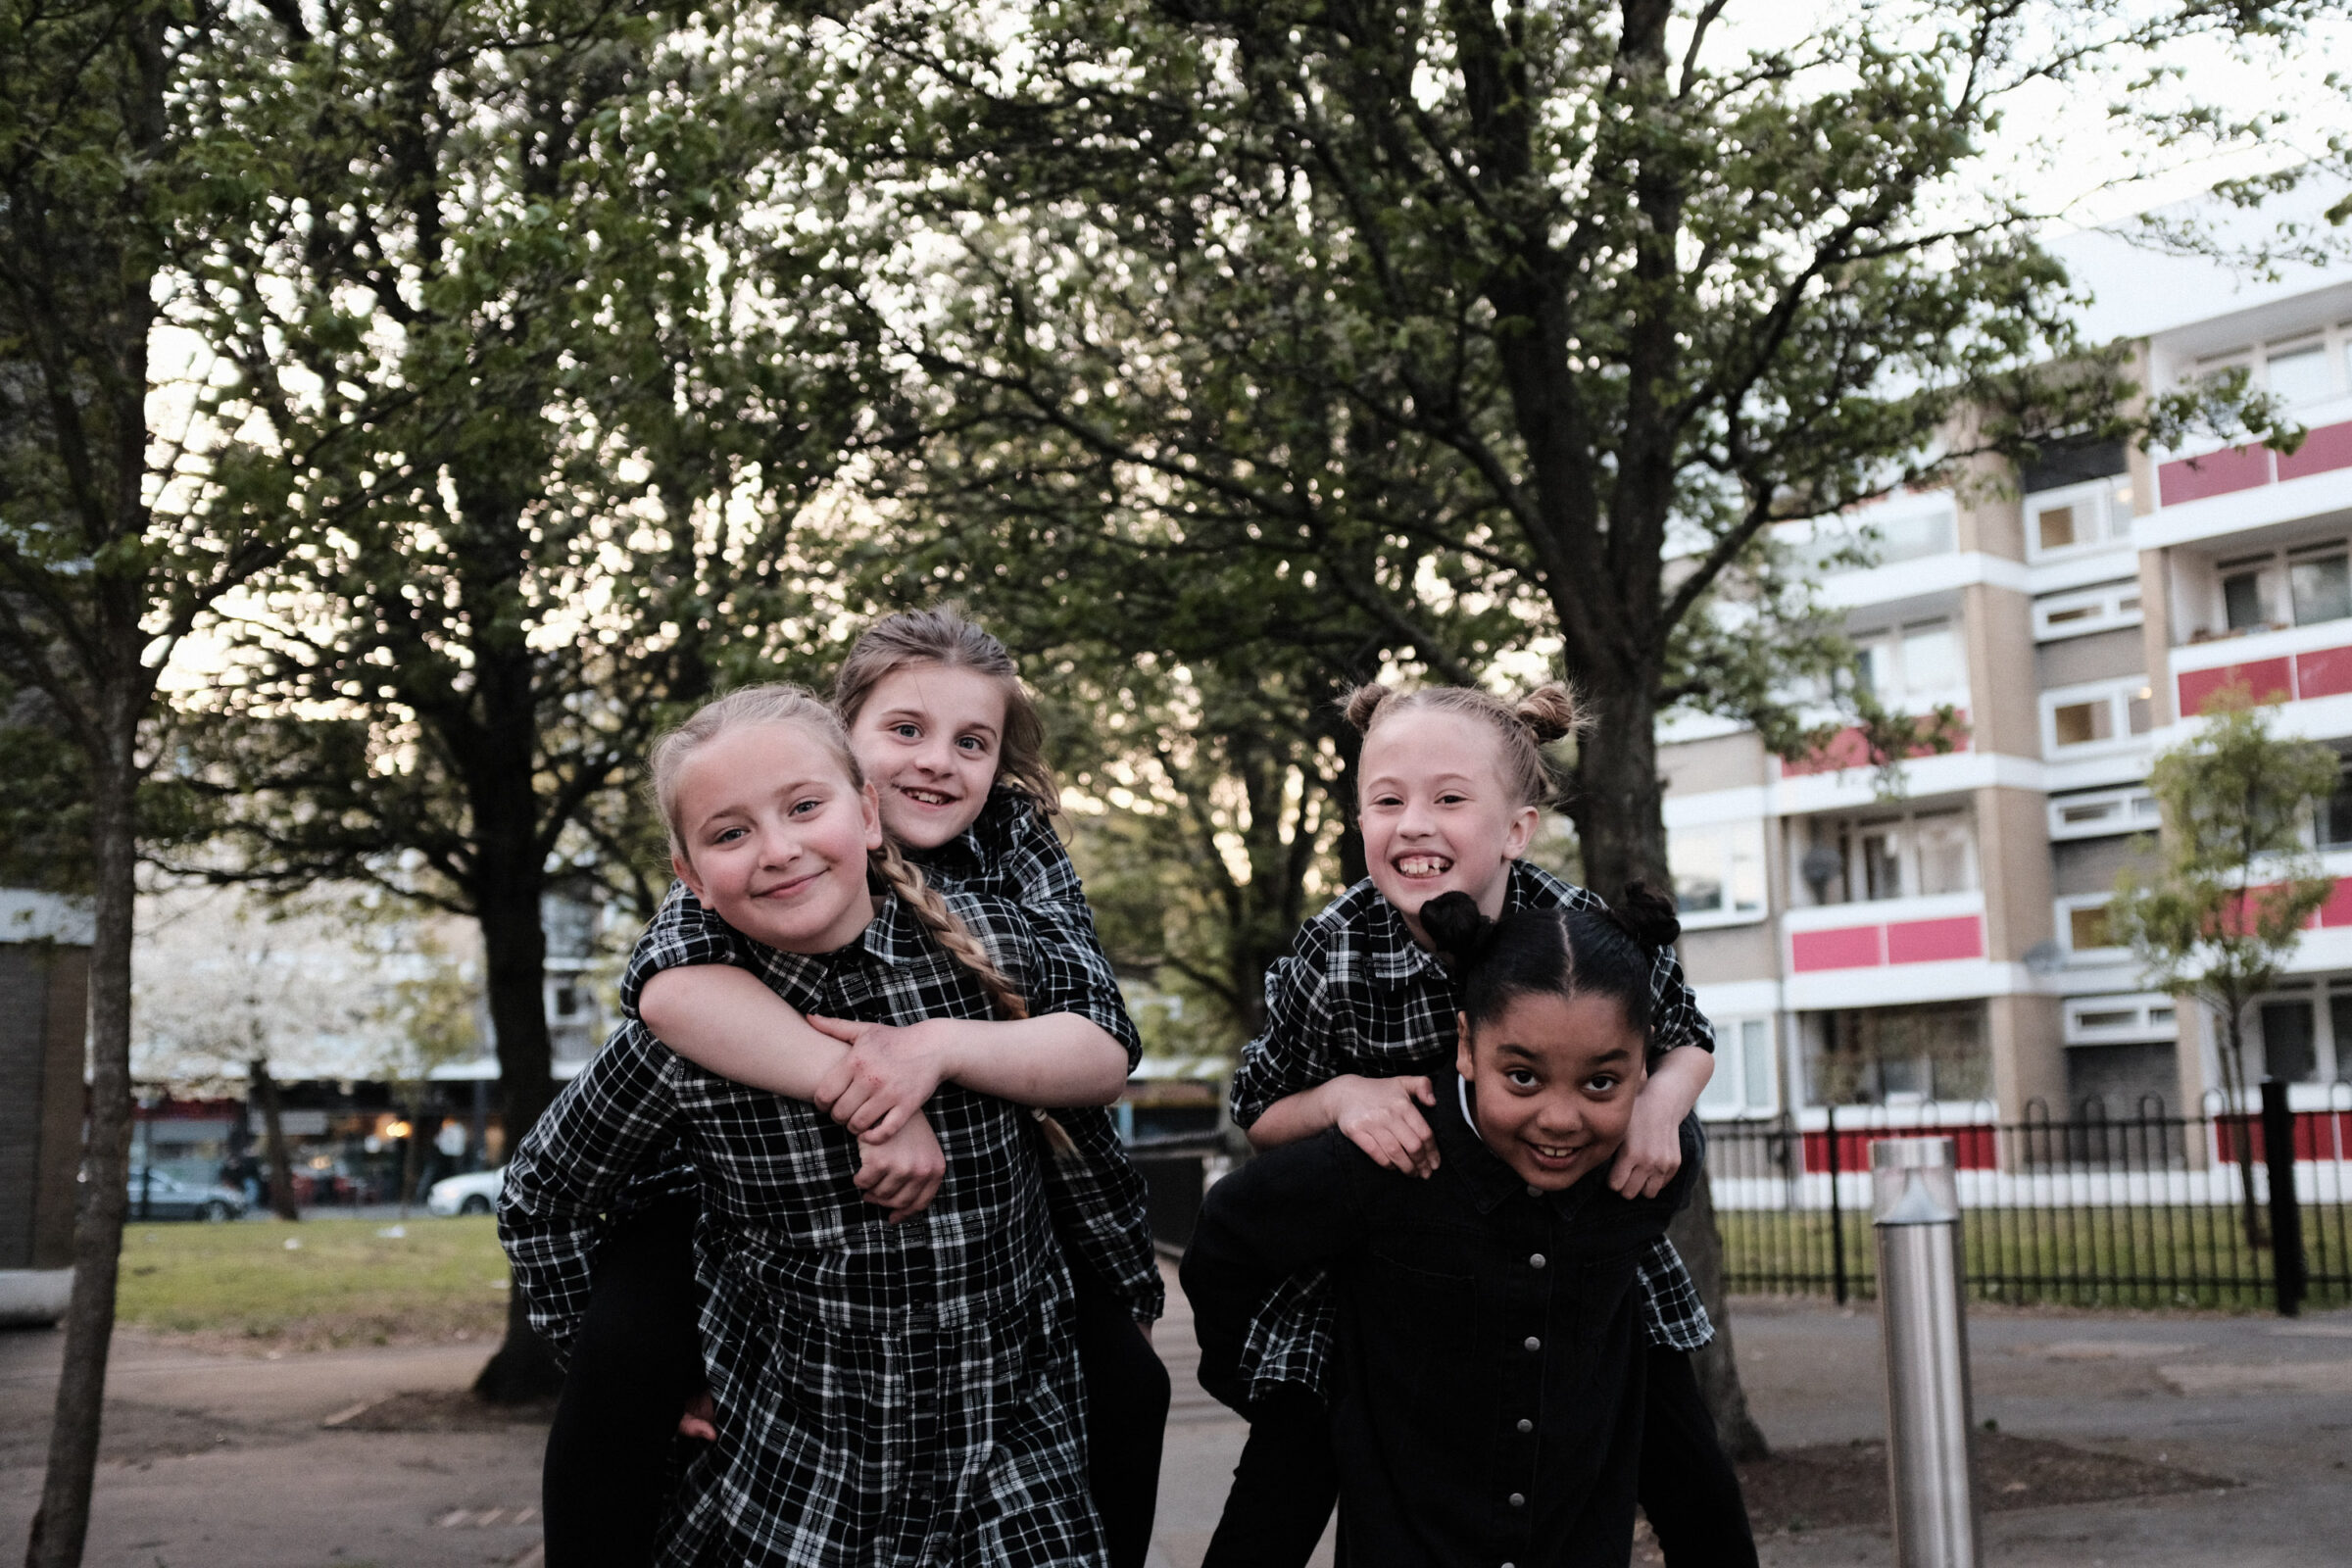 Four girls pose for a picture in a park area, with flats and trees in the background